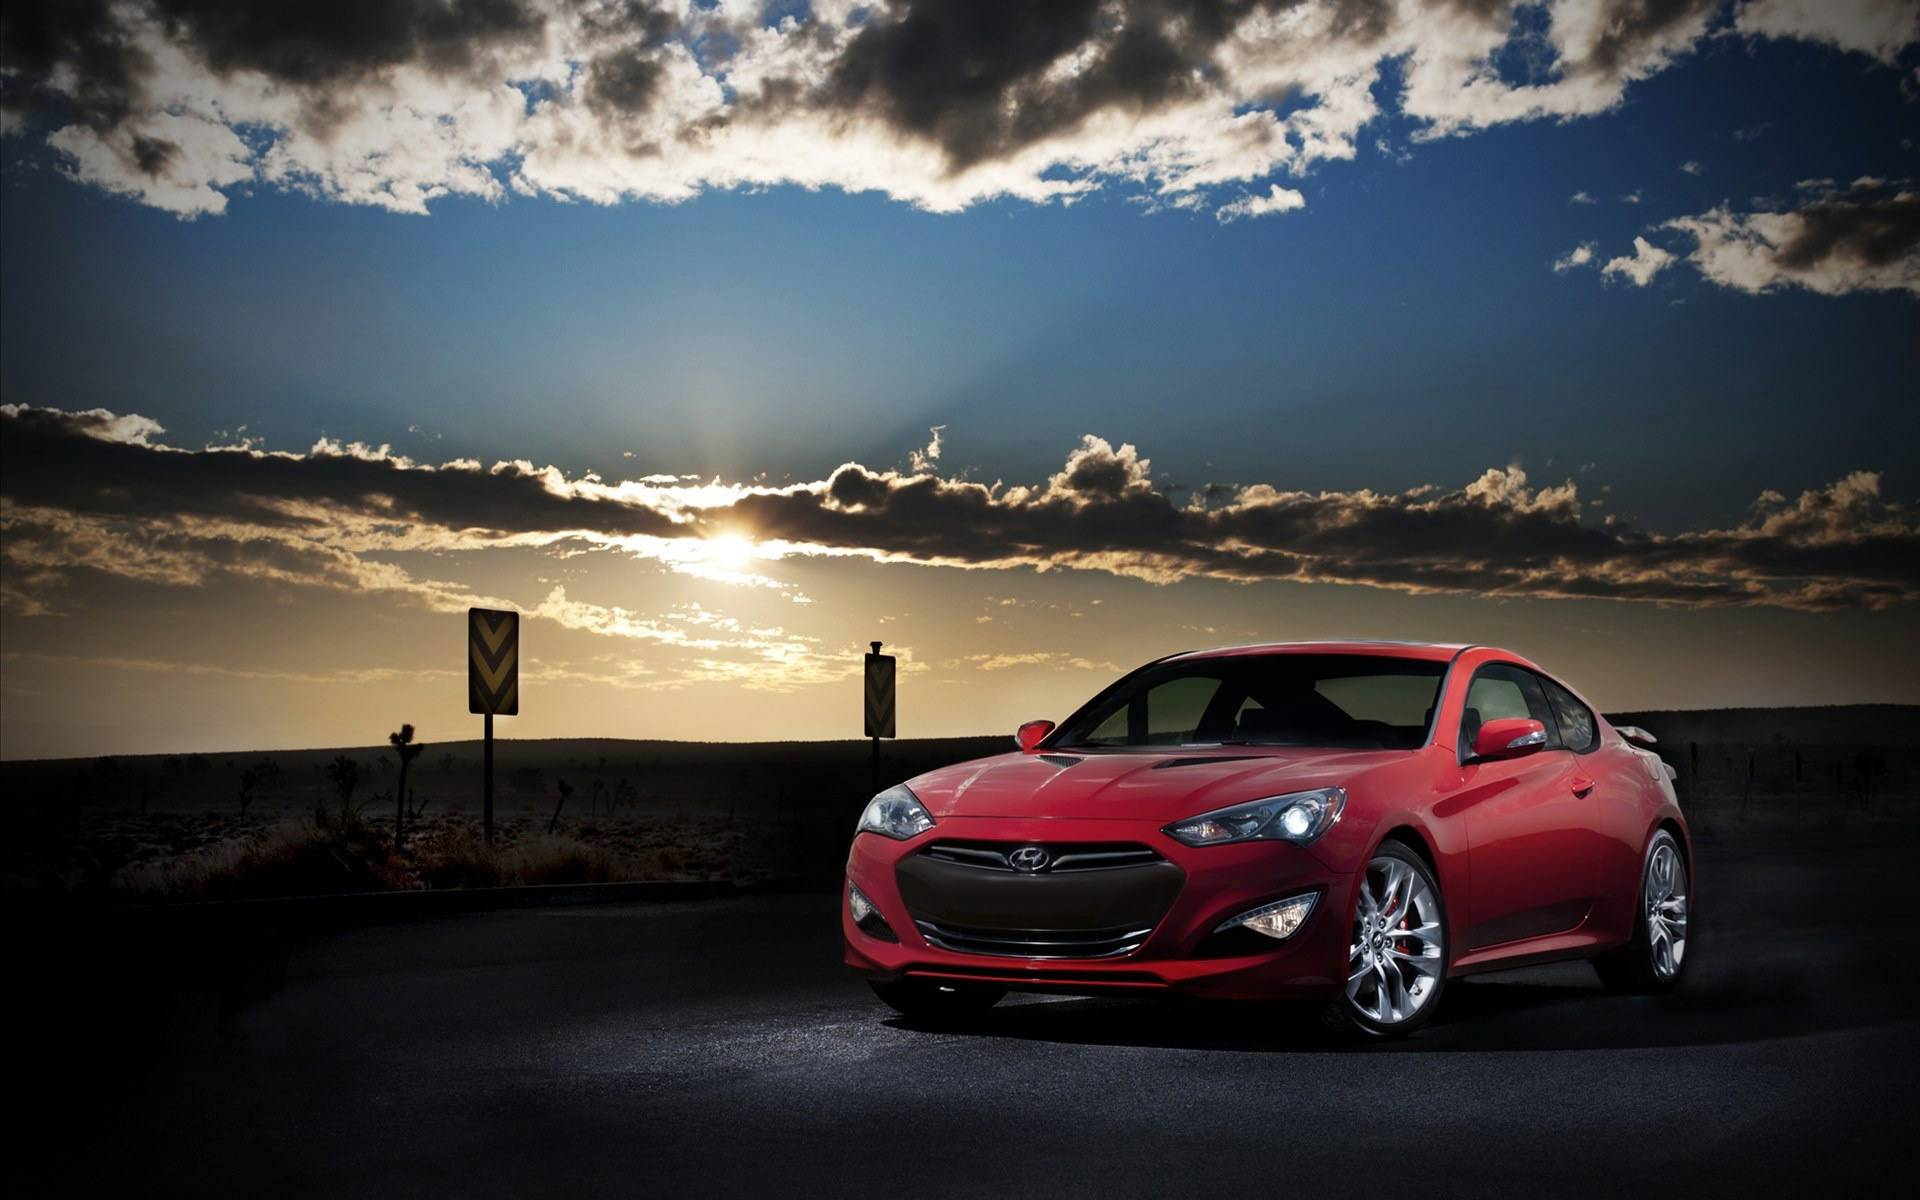 Hyundai Genesis Coupe Wallpaper Hd Wallpaper Background